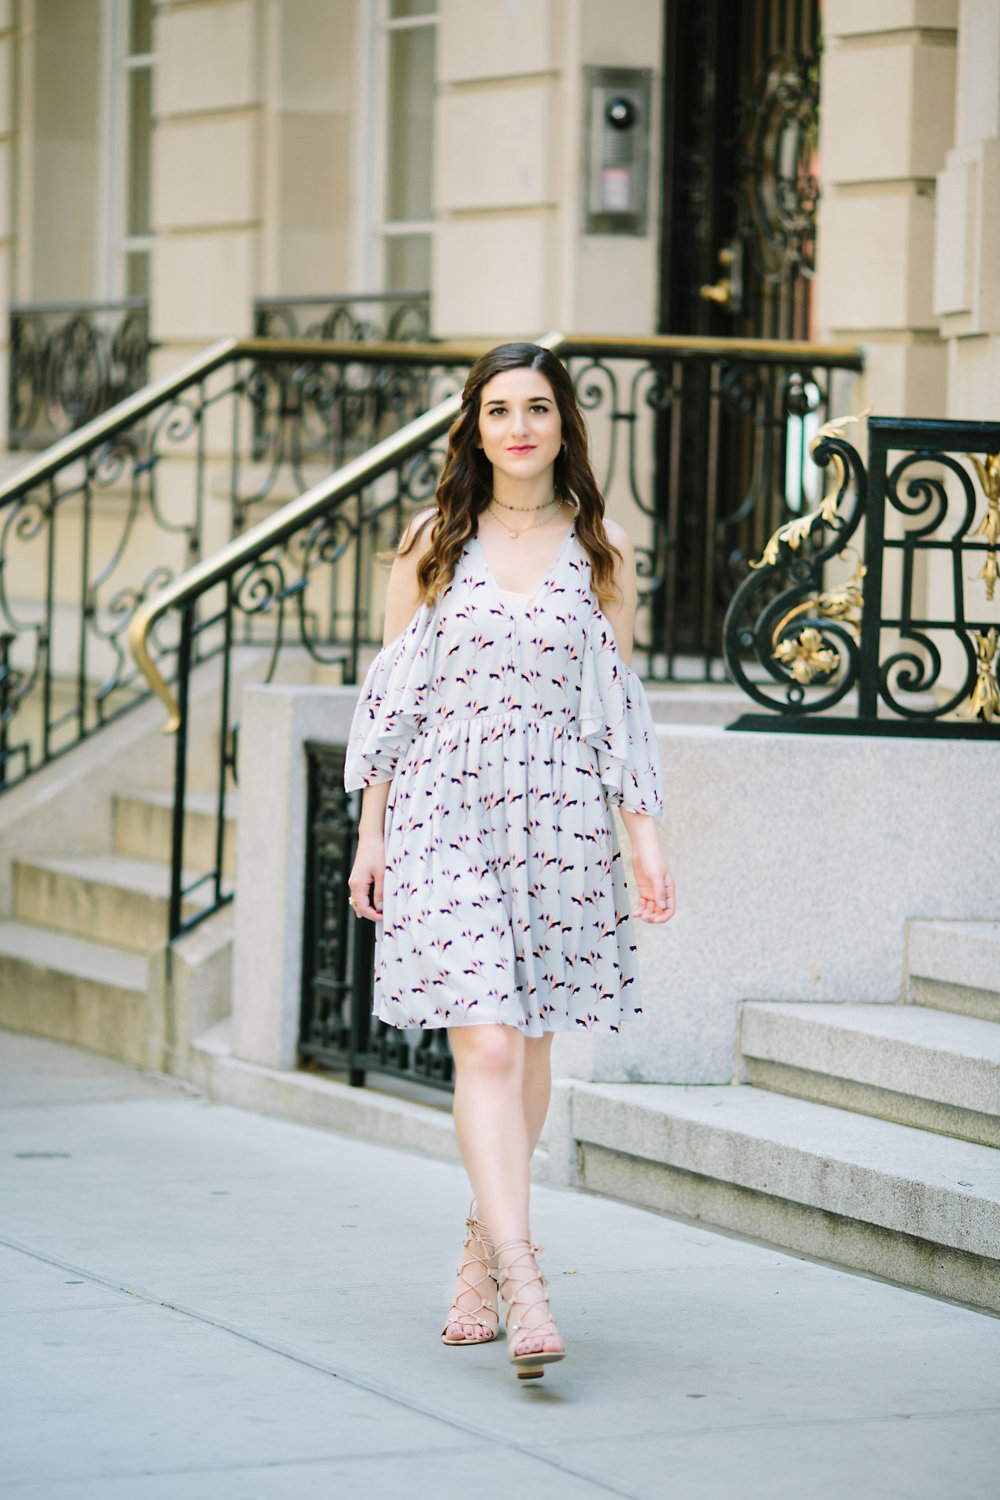 Cold Shoulder Robbie Dress :: Rebecca Minkoff Louboutins & Love Fashion Blog Esther Santer NYC Street Style Blogger Outfit OOTD Bloomingdale's Ivanka Trump Lace-Up Heels Shoes Nordstrom Photoshoot Jewelry Necklaces Model Shopping Pretty Feminine Girly.jpg